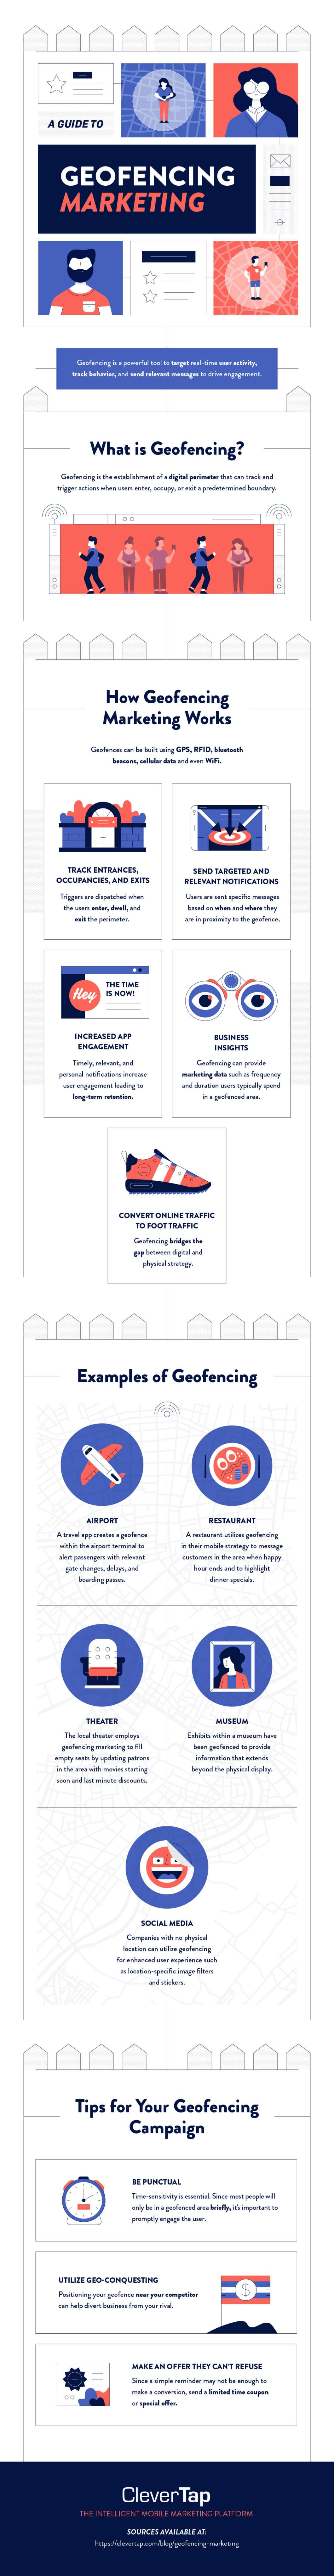 How to Use Location as a Marketing Tool: Geofencing and How It Works - Infographic